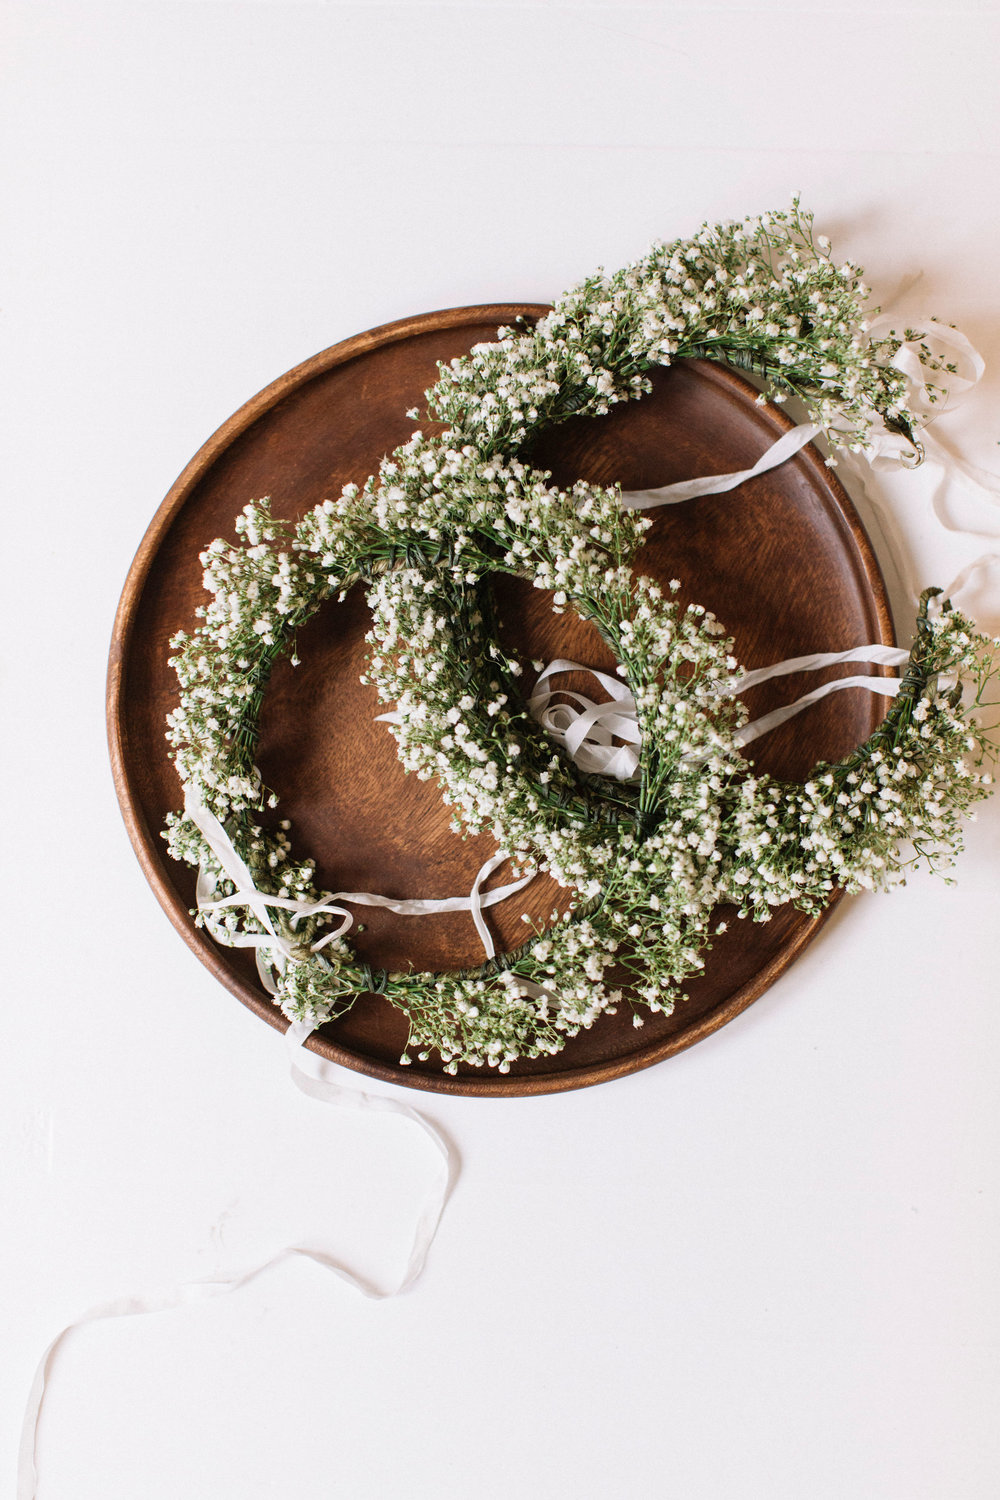 Light and airy flower crowns by Venn Floral photographed by Lucille Lawrence for a Healdsburg Wedding.